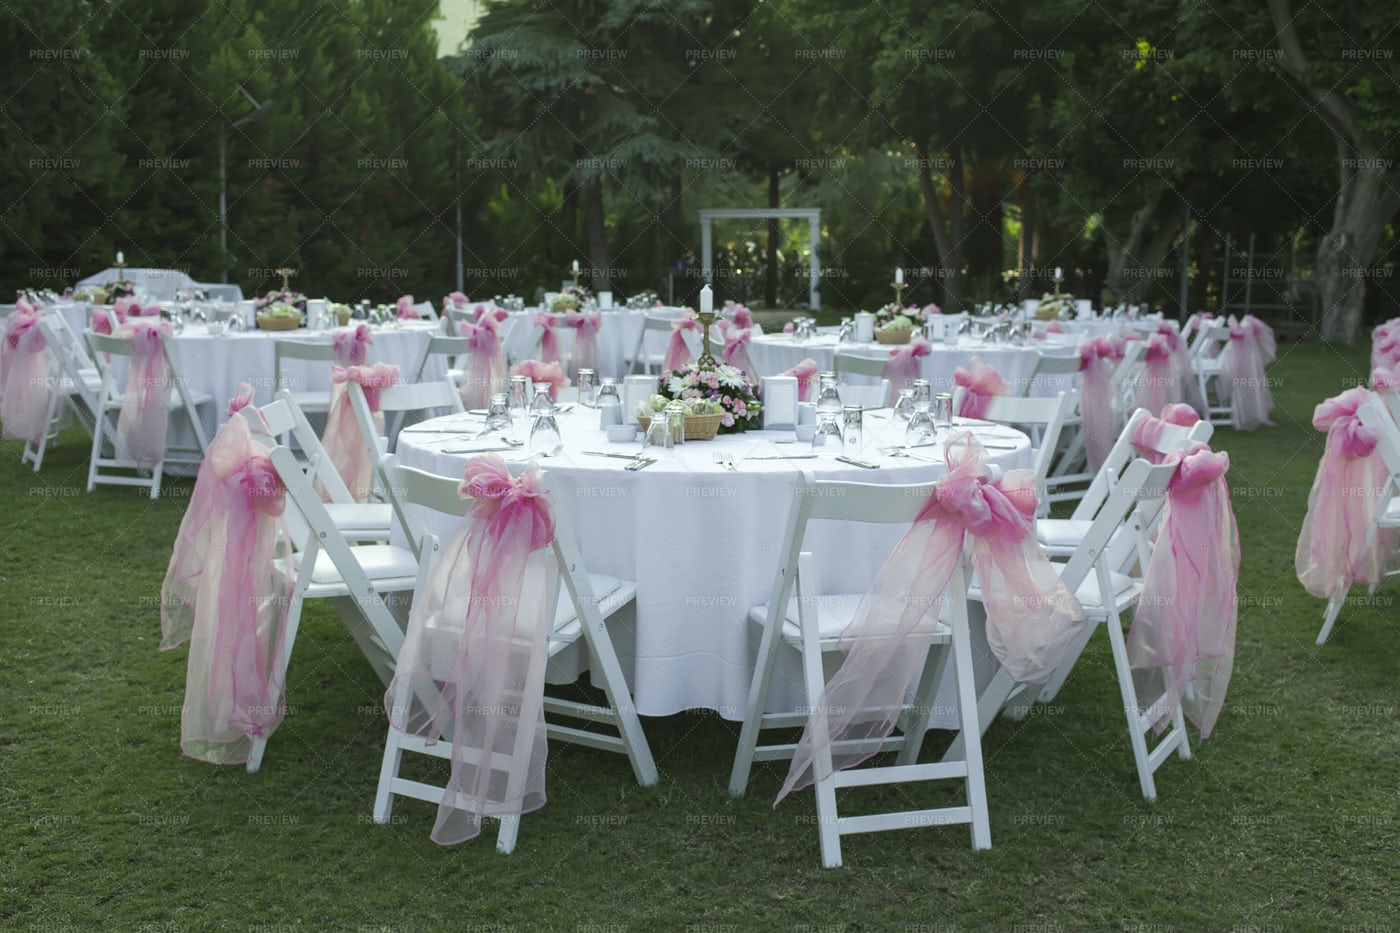 Pink Bows On Wedding Chairs: Stock Photos